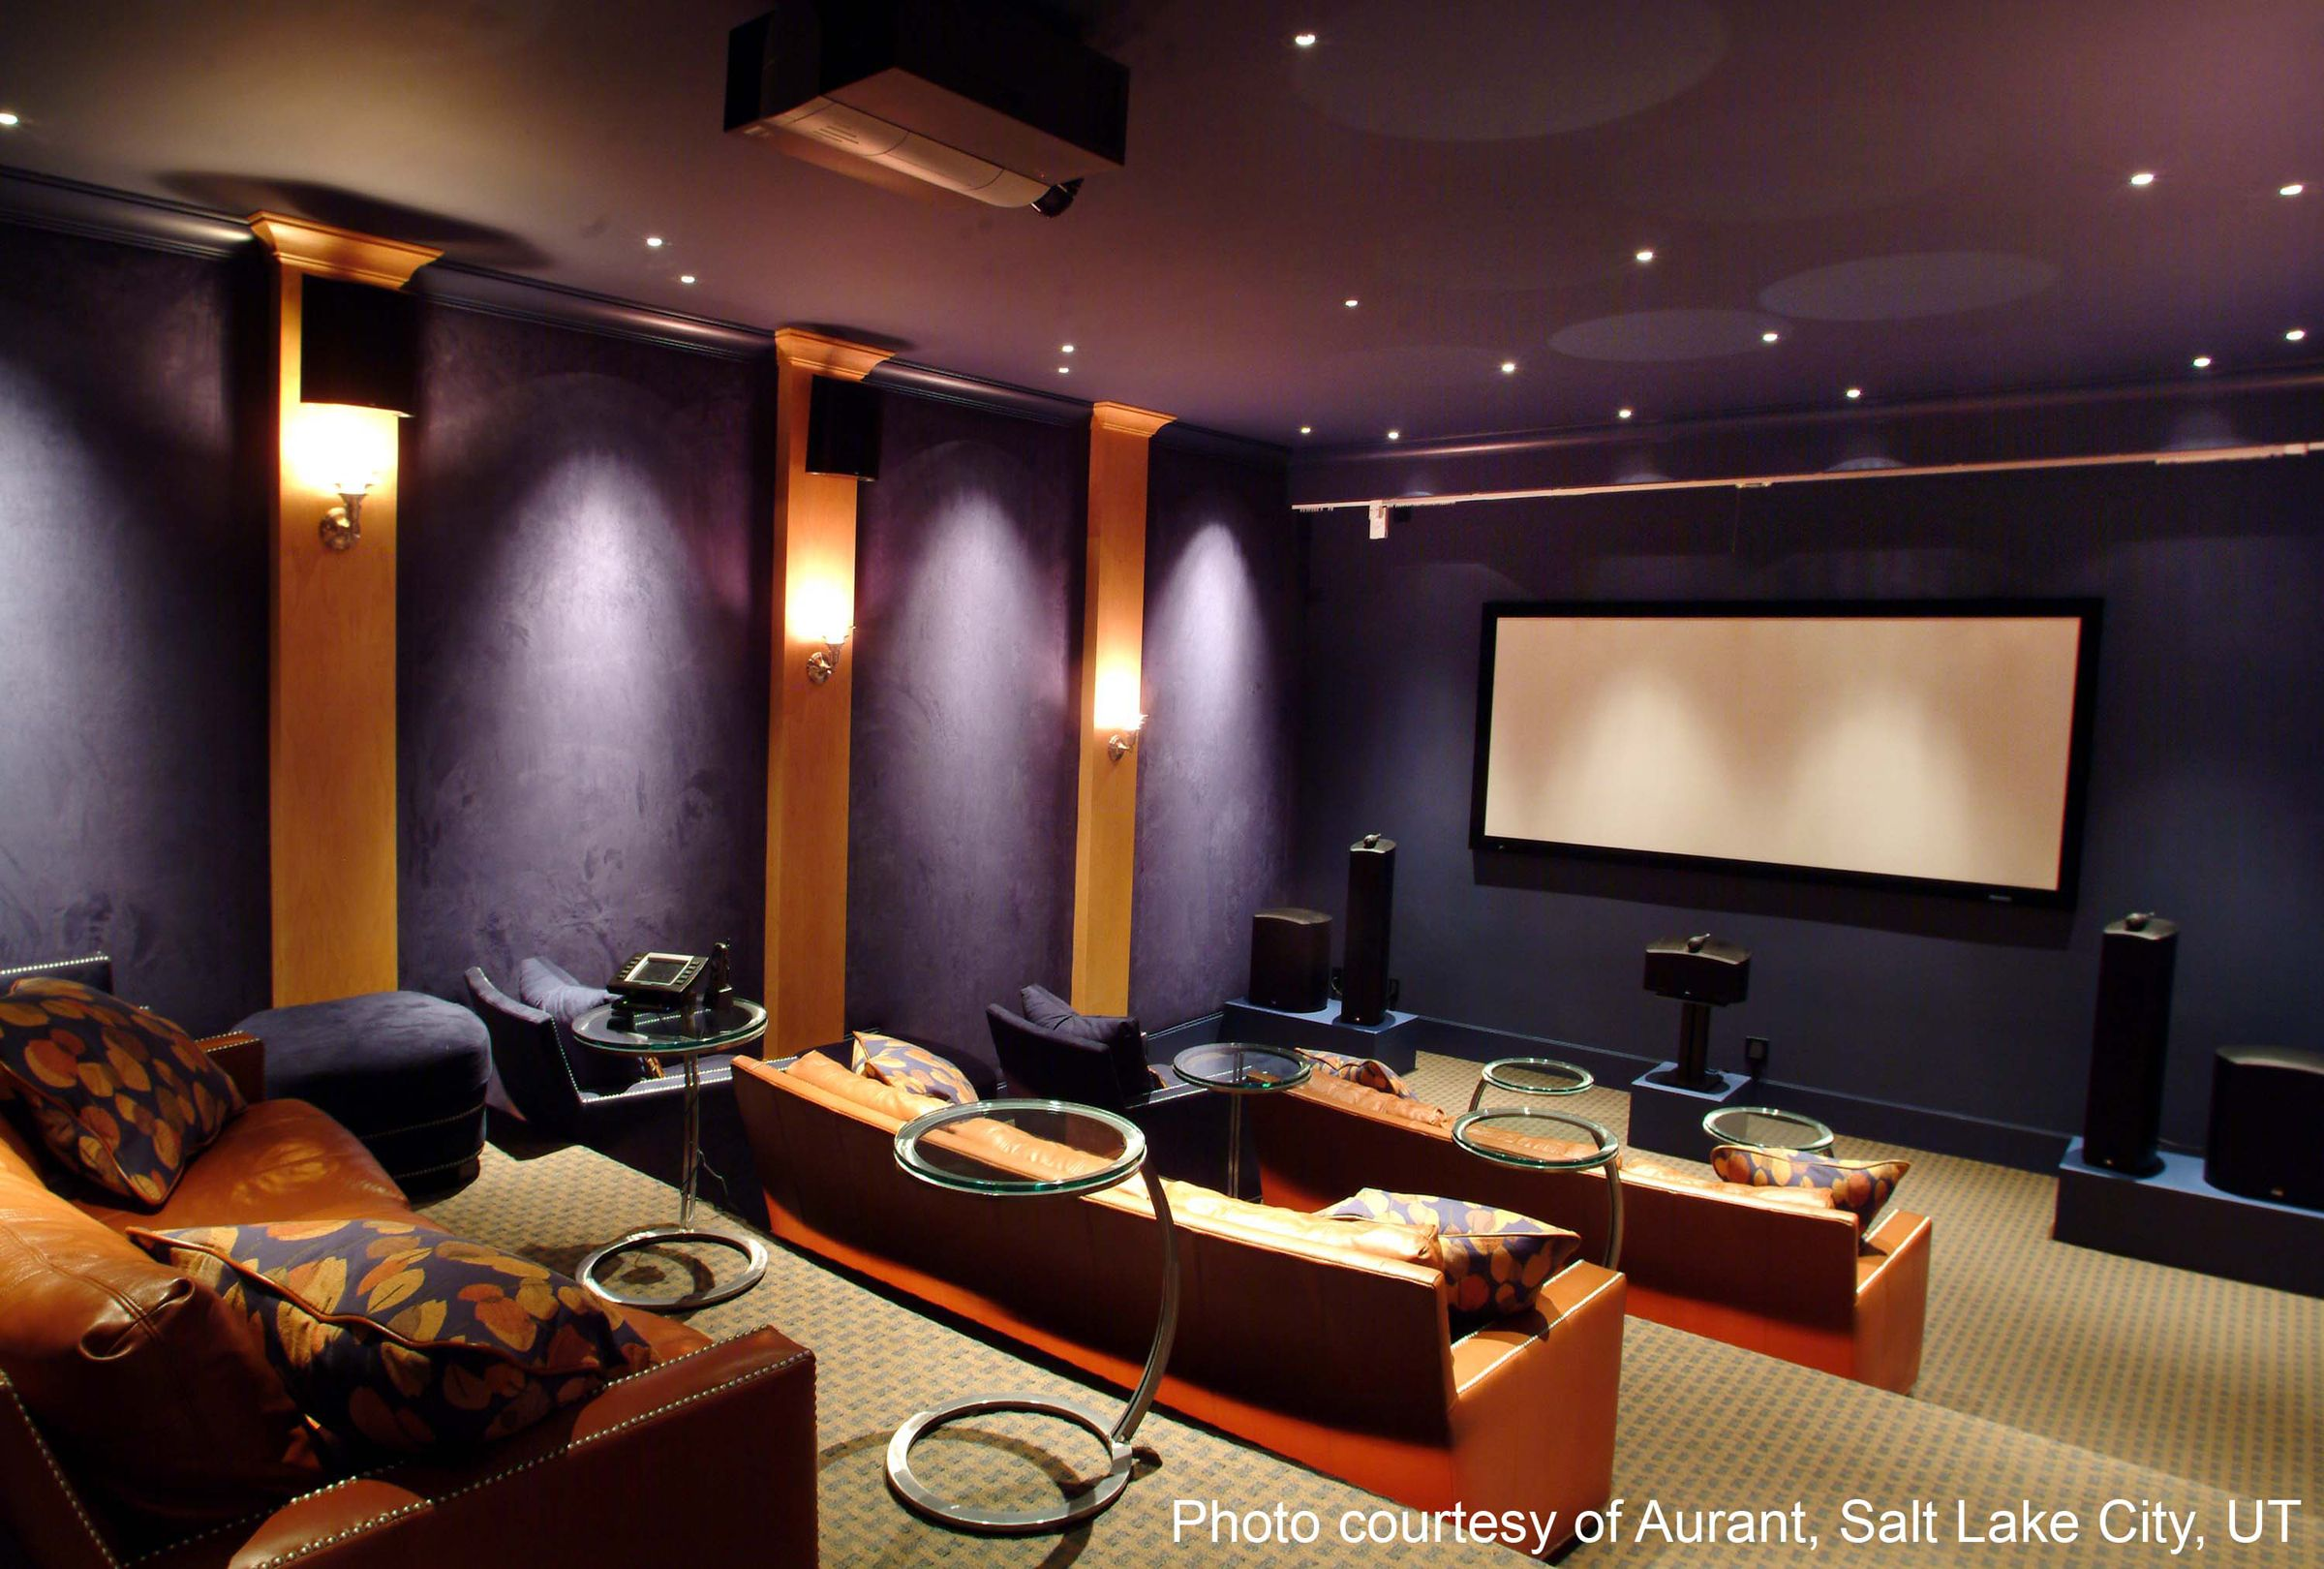 best images about home theater room ideas on pinterest small designing a home theater room - Home Theater Rooms Design Ideas